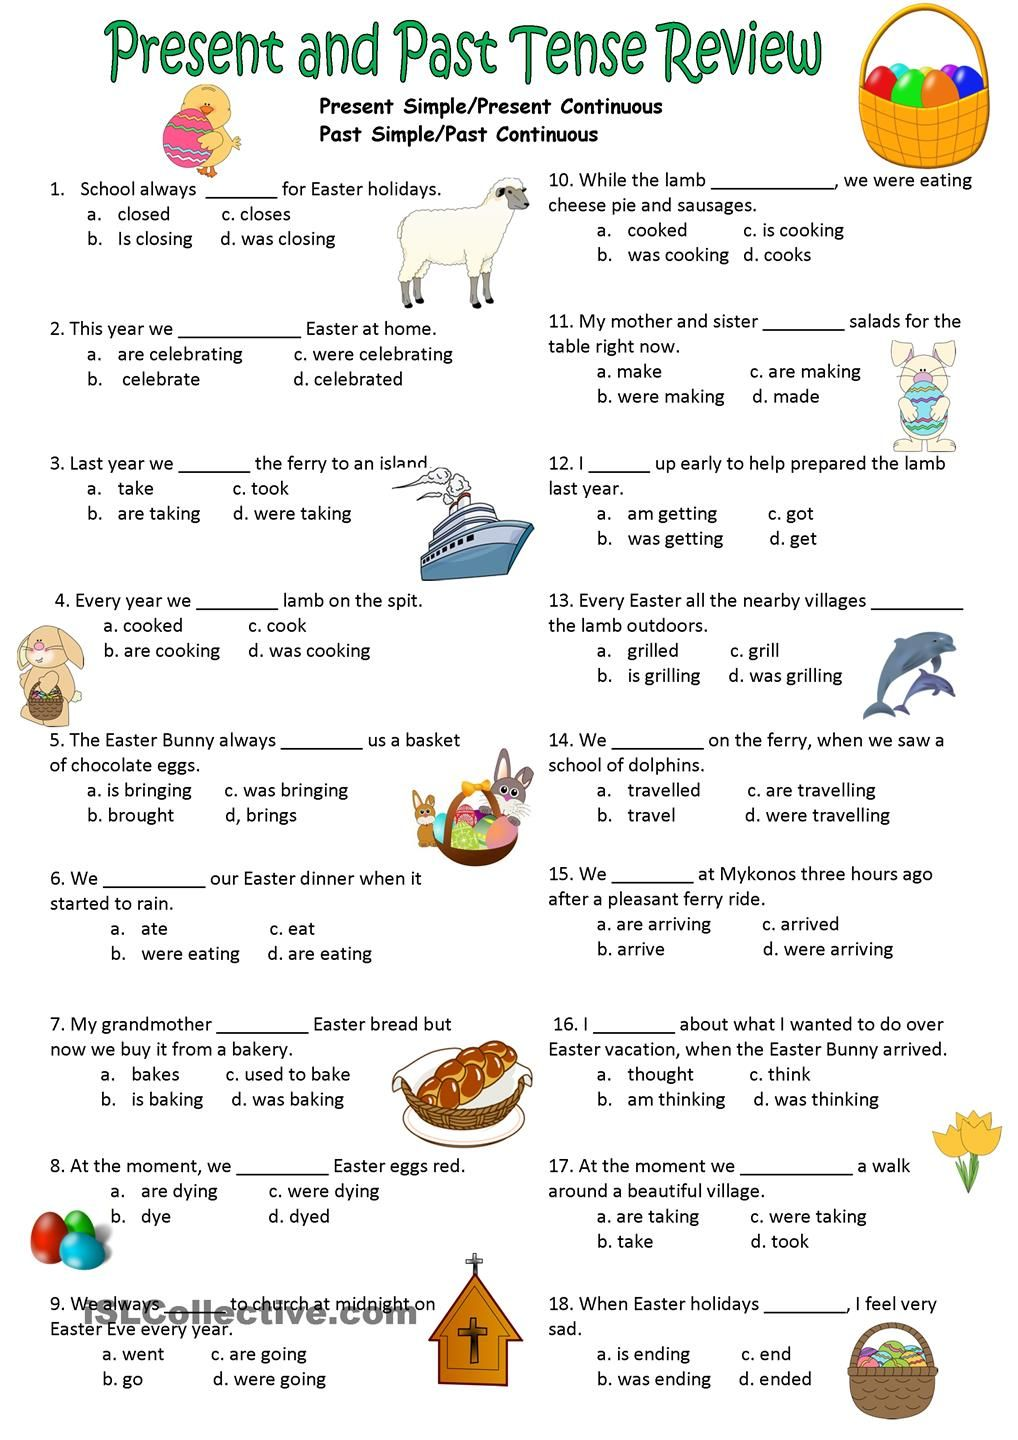 Writing future tense of verb worksheet turtle diary - Present Past Simple Continuous Test Verb Tensespast Tensemultiple Choicecorrectworksheetsmenupresents